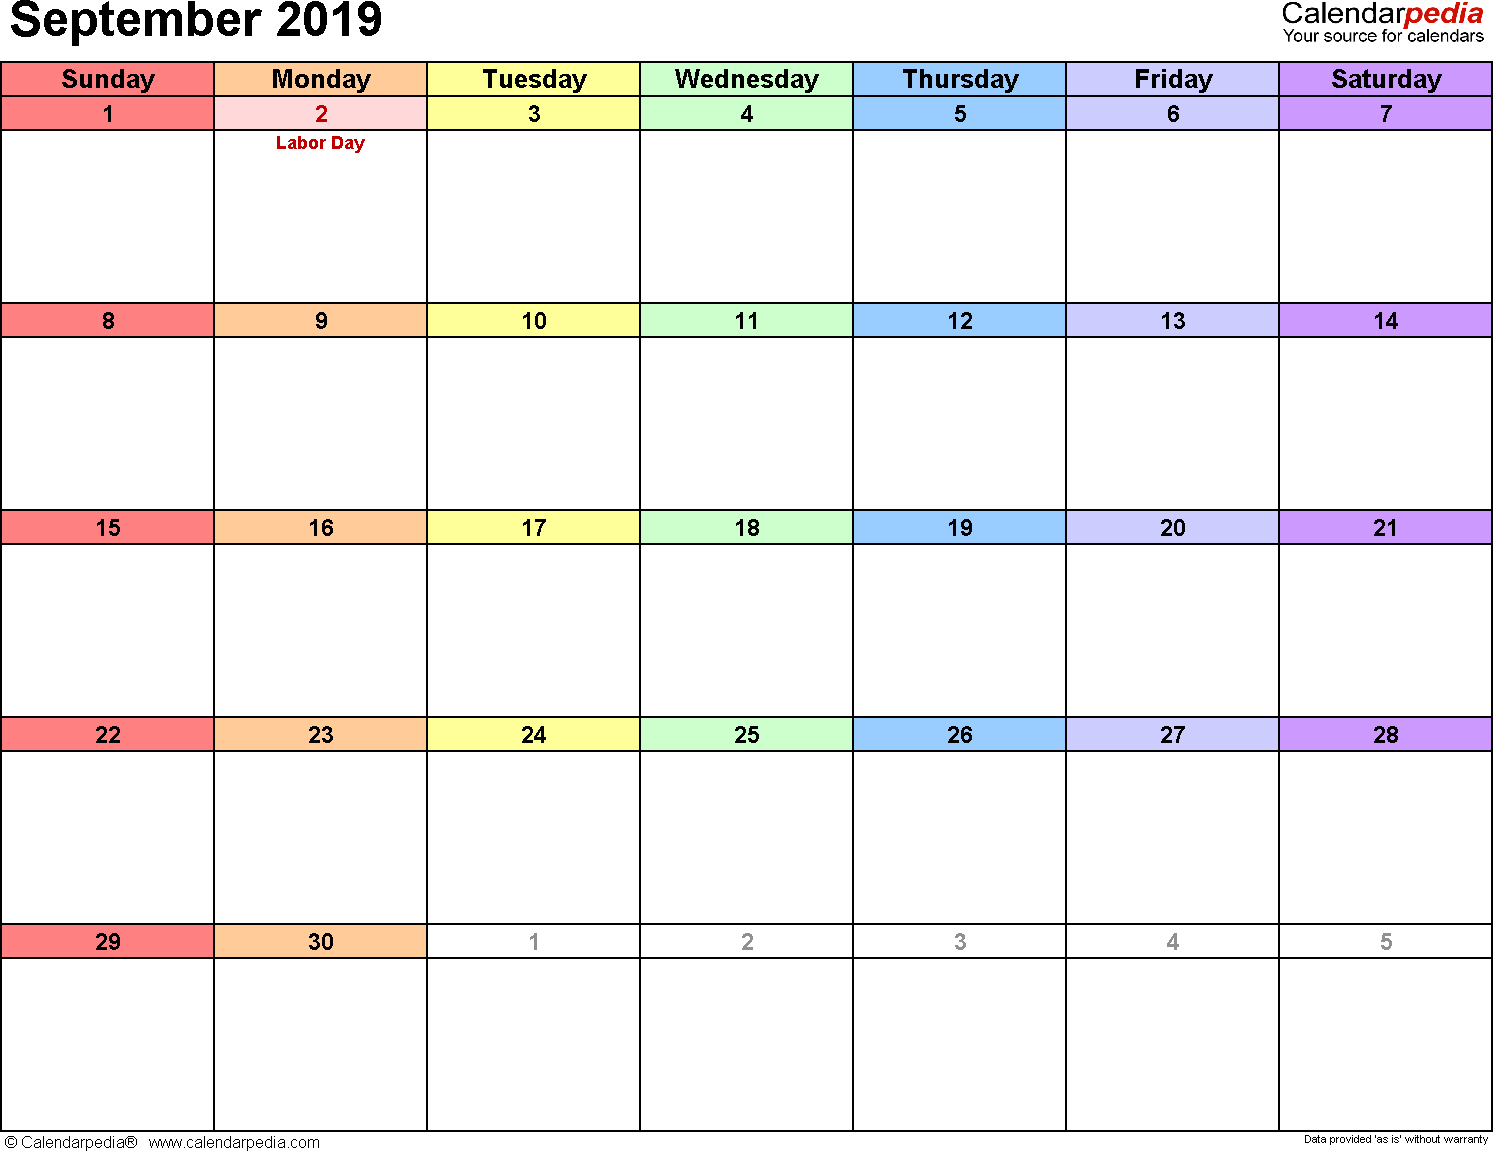 2019 Sept Calendar September 2019 Calendars for Word, Excel & PDF